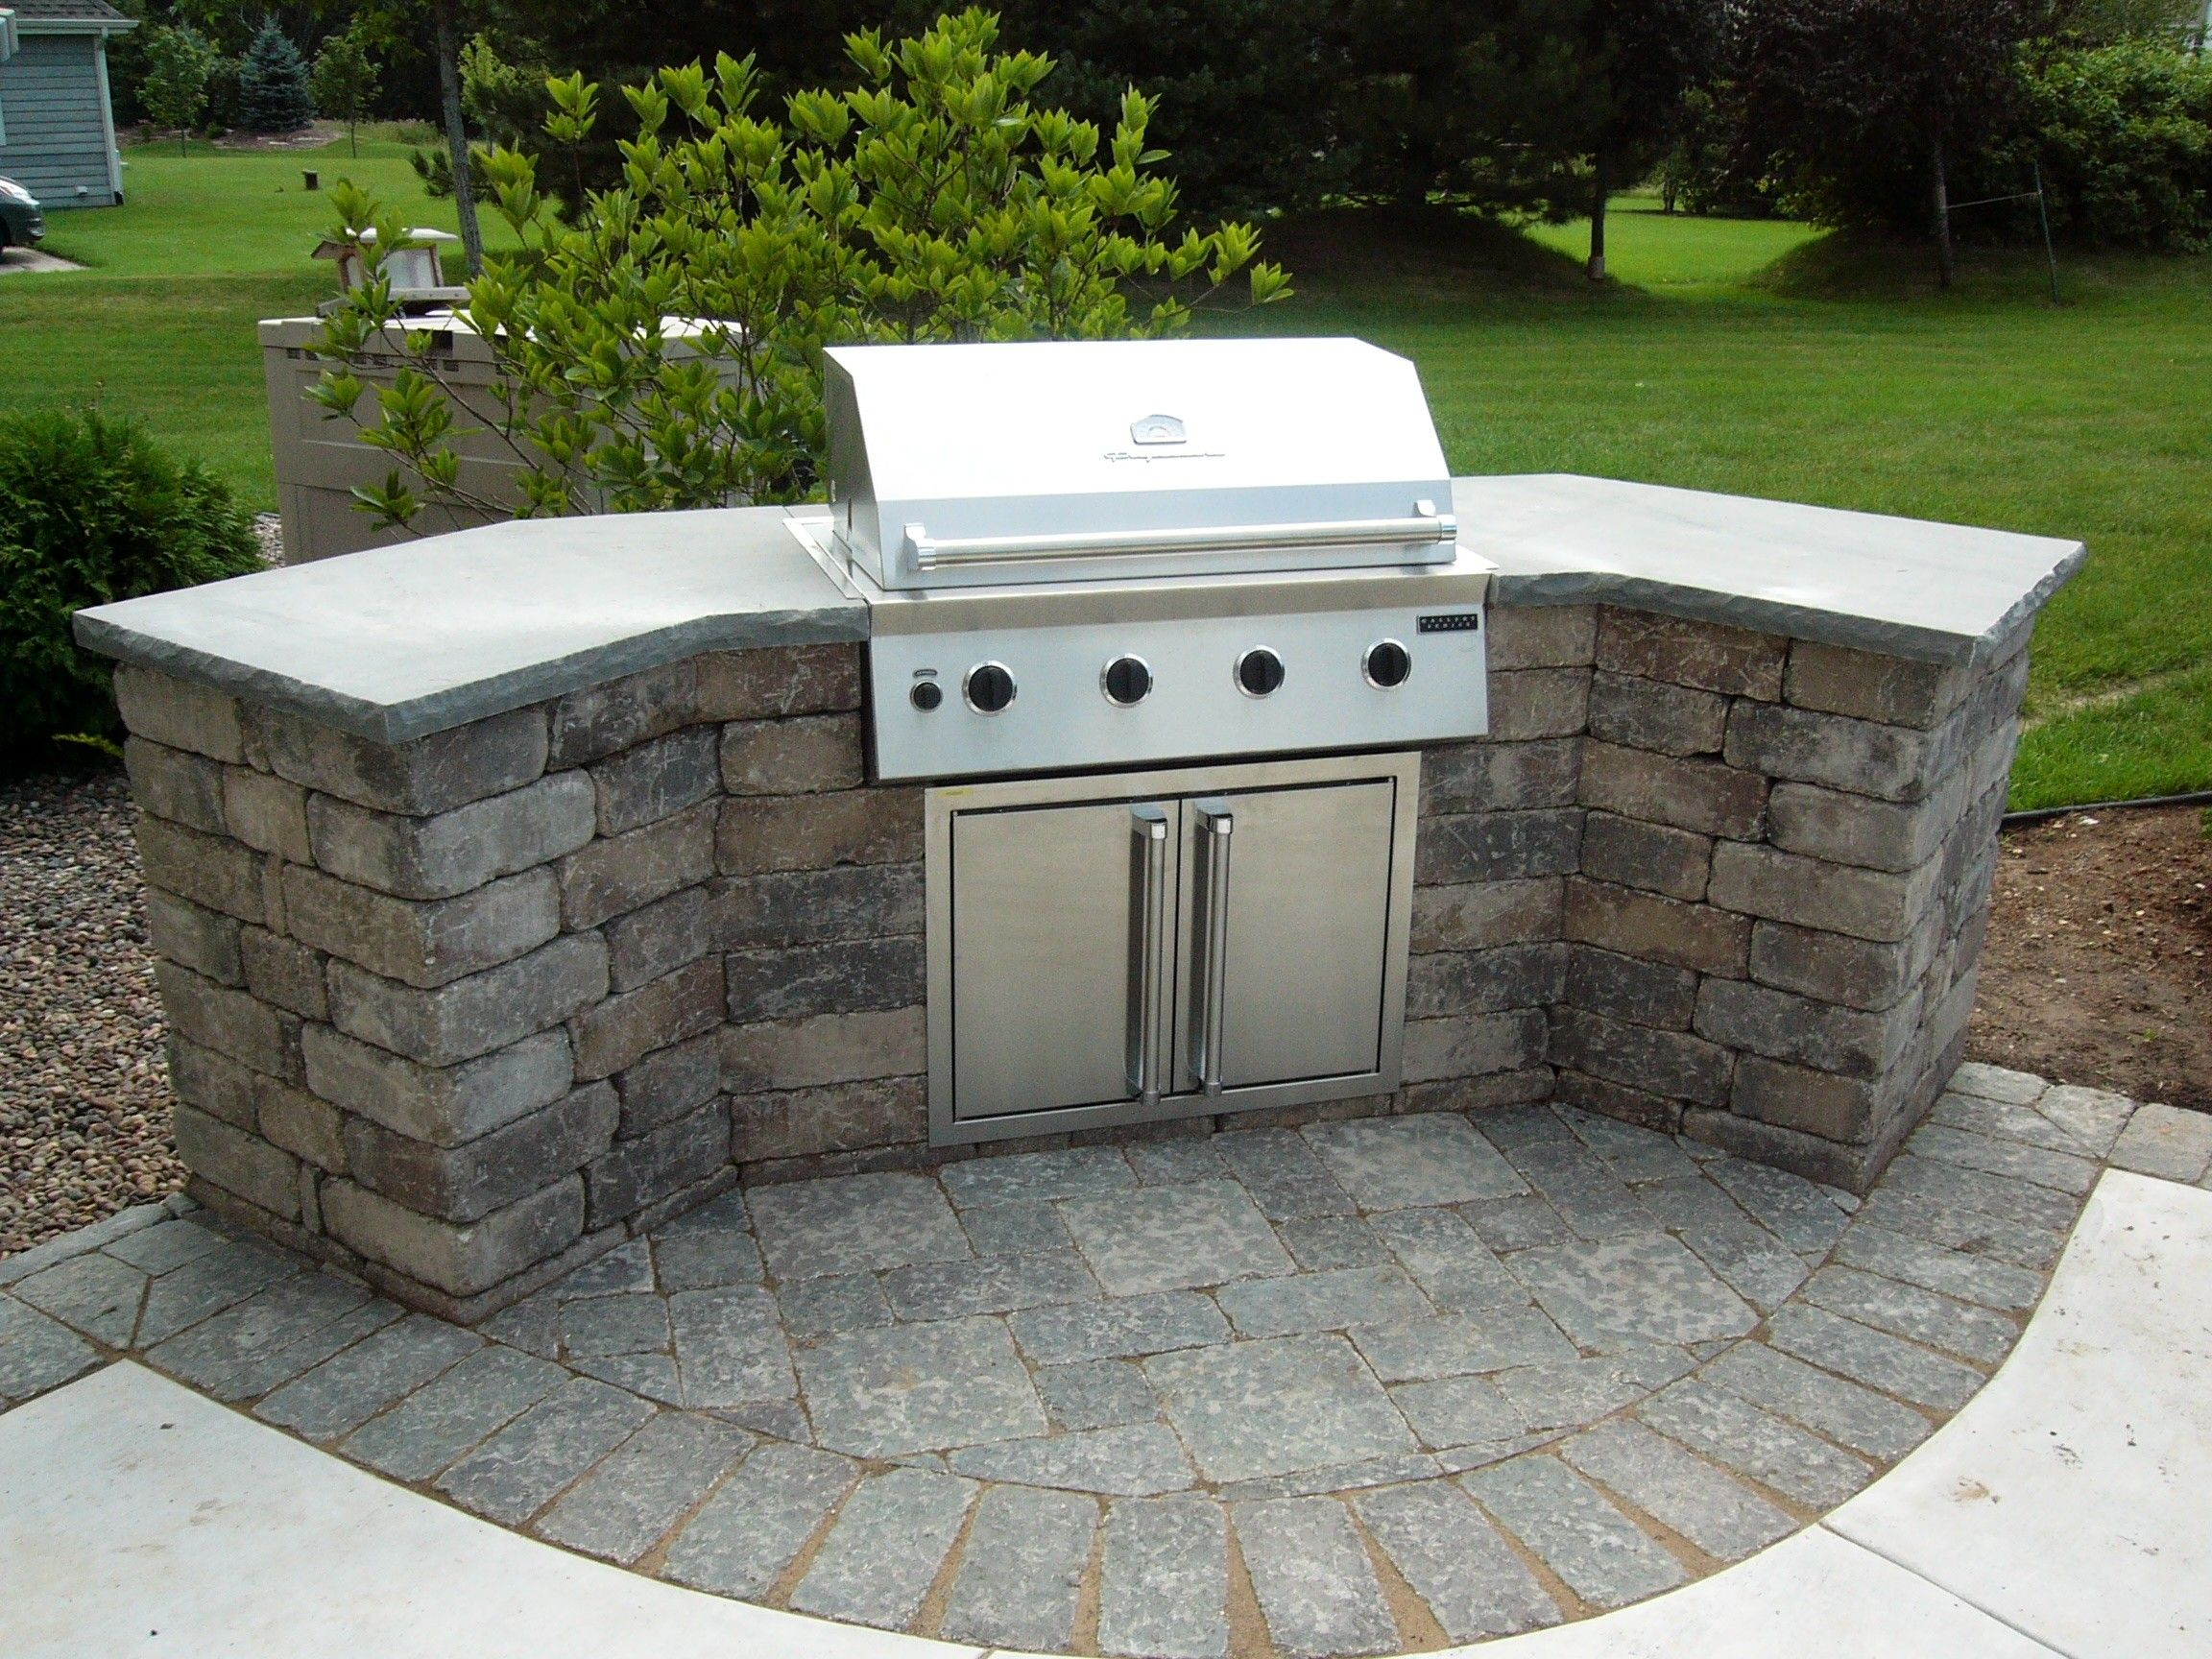 Miraculous Curved Stone Prefab Kitchen Island With Gray Concrete Best Image Libraries Thycampuscom